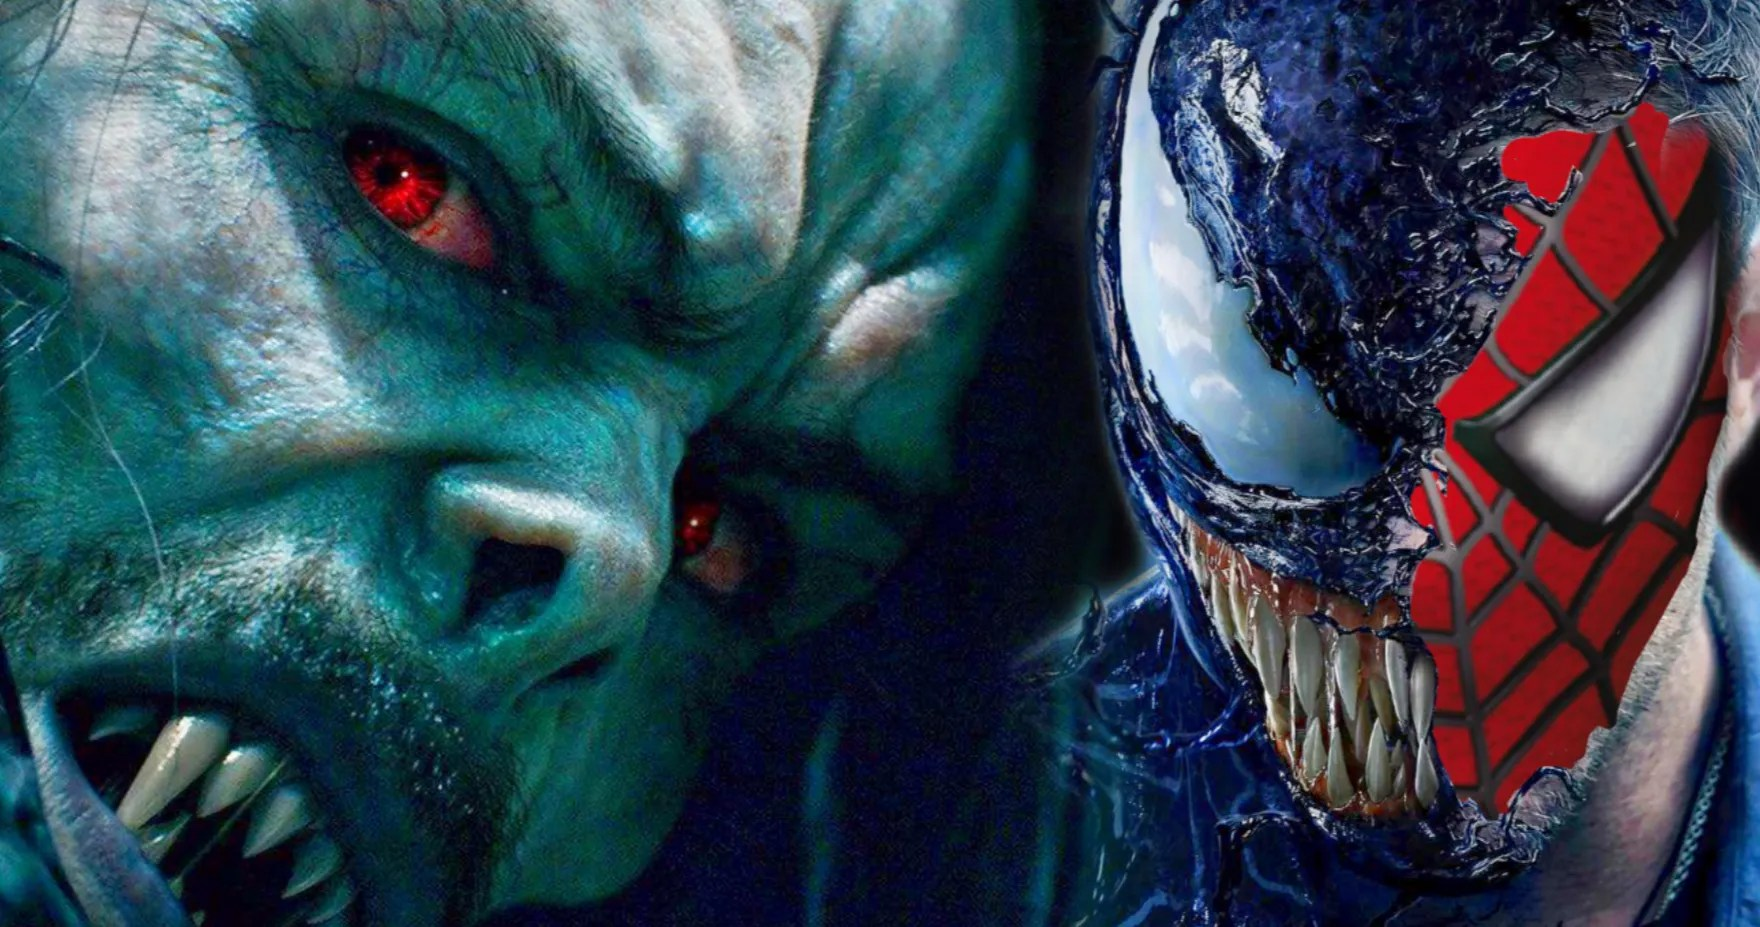 Venom 2 and Morbius Get Further Connected to the MCU in Latest Sony Viral Marketing